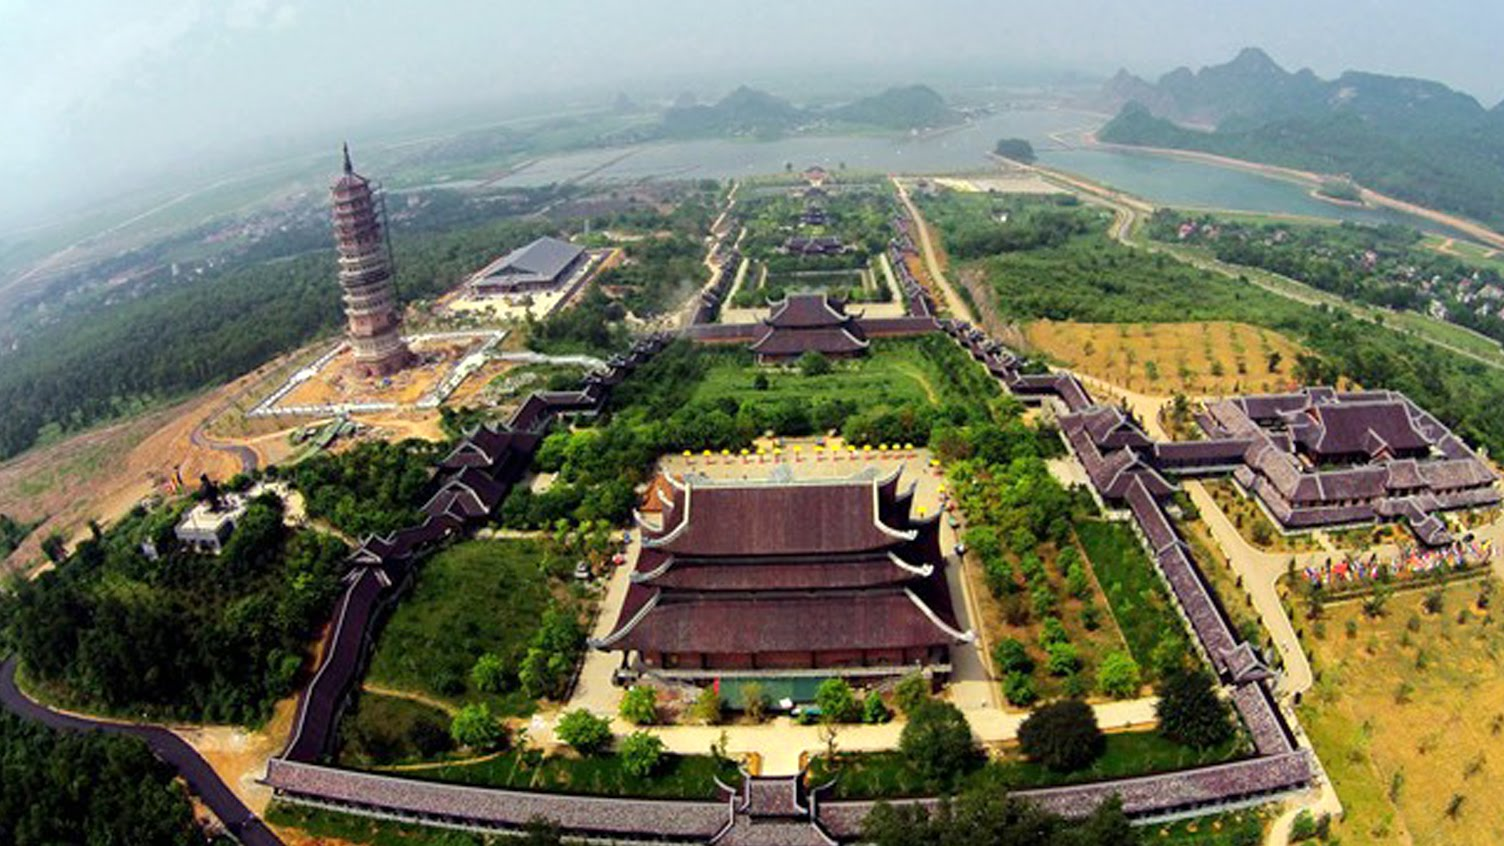 The image of Bai Dinh pagoda population from height